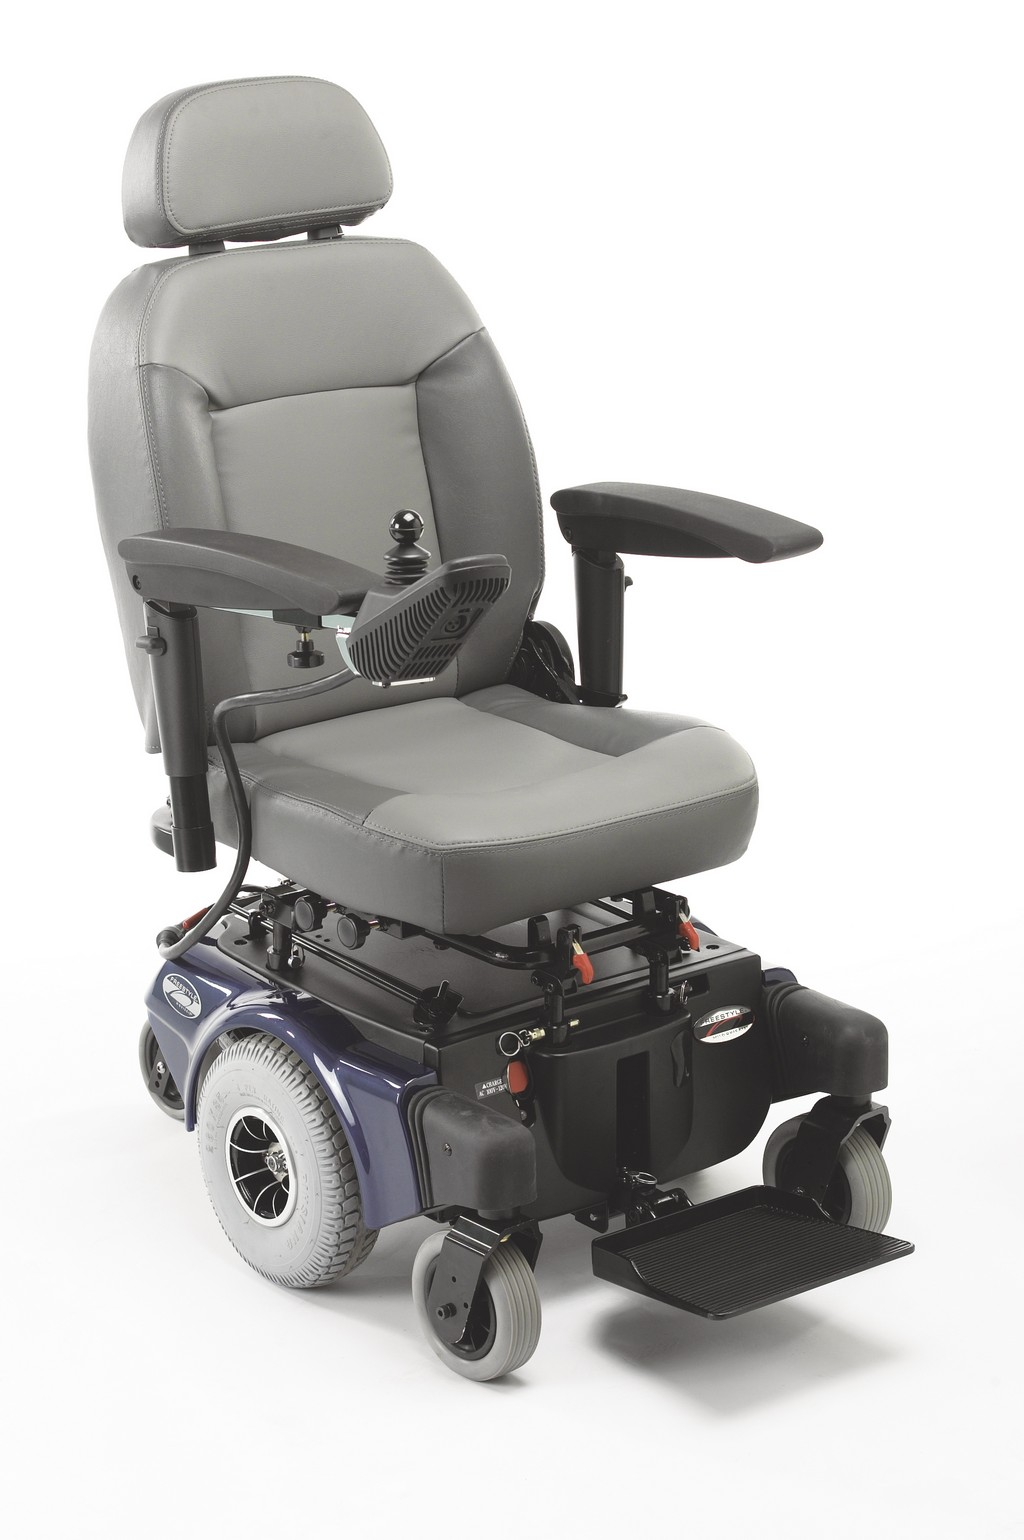 high mobility power wheel chair, invacare pronto m51 power wheel chair, quickie electric wheelchair, power wheel chair covers hevey